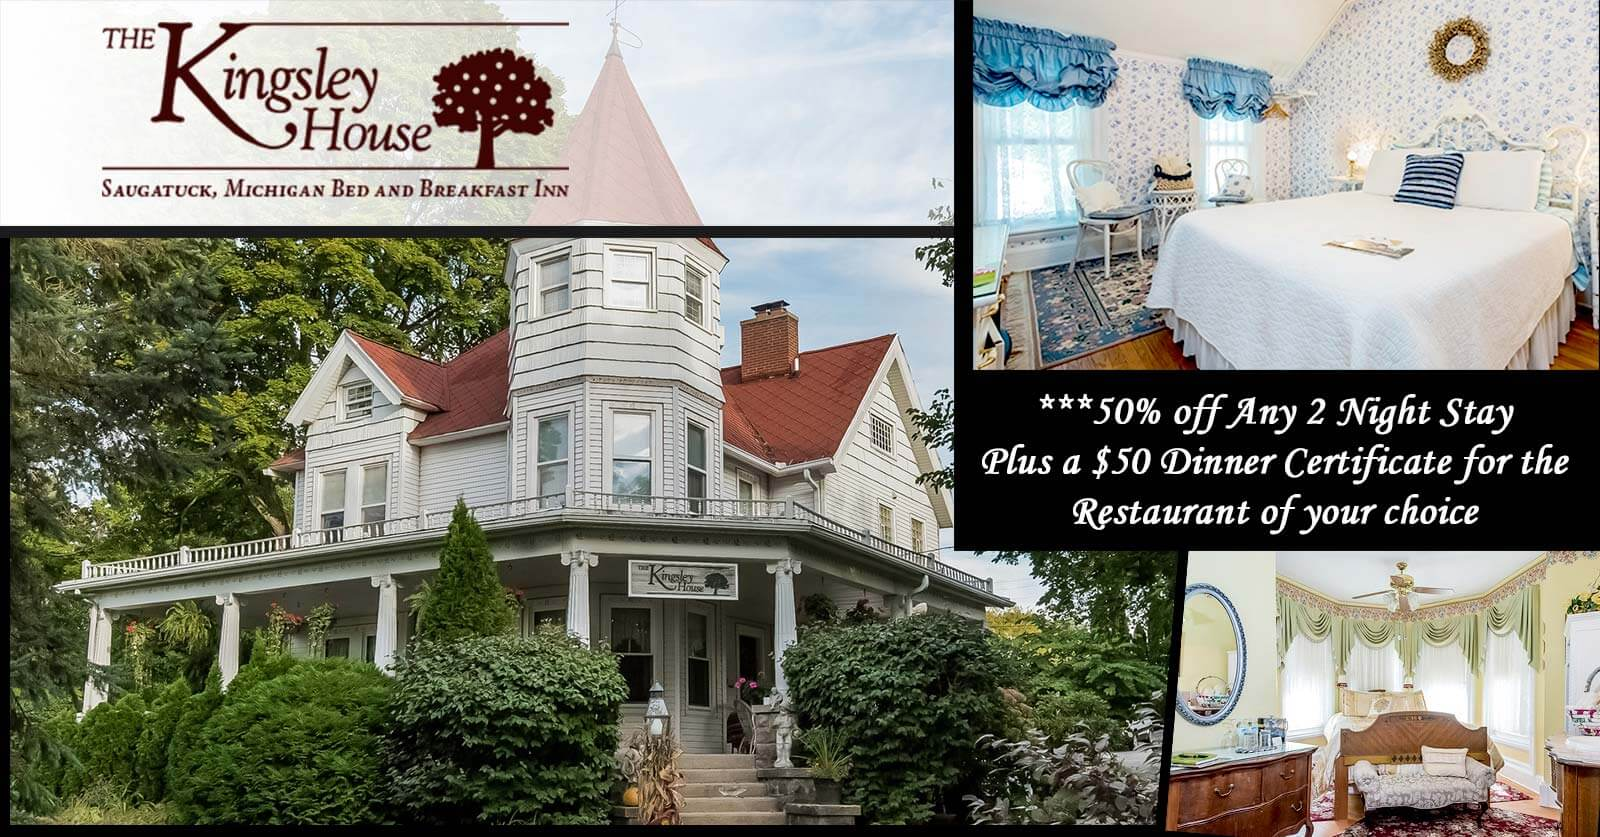 50% off promotion for Kingsley House